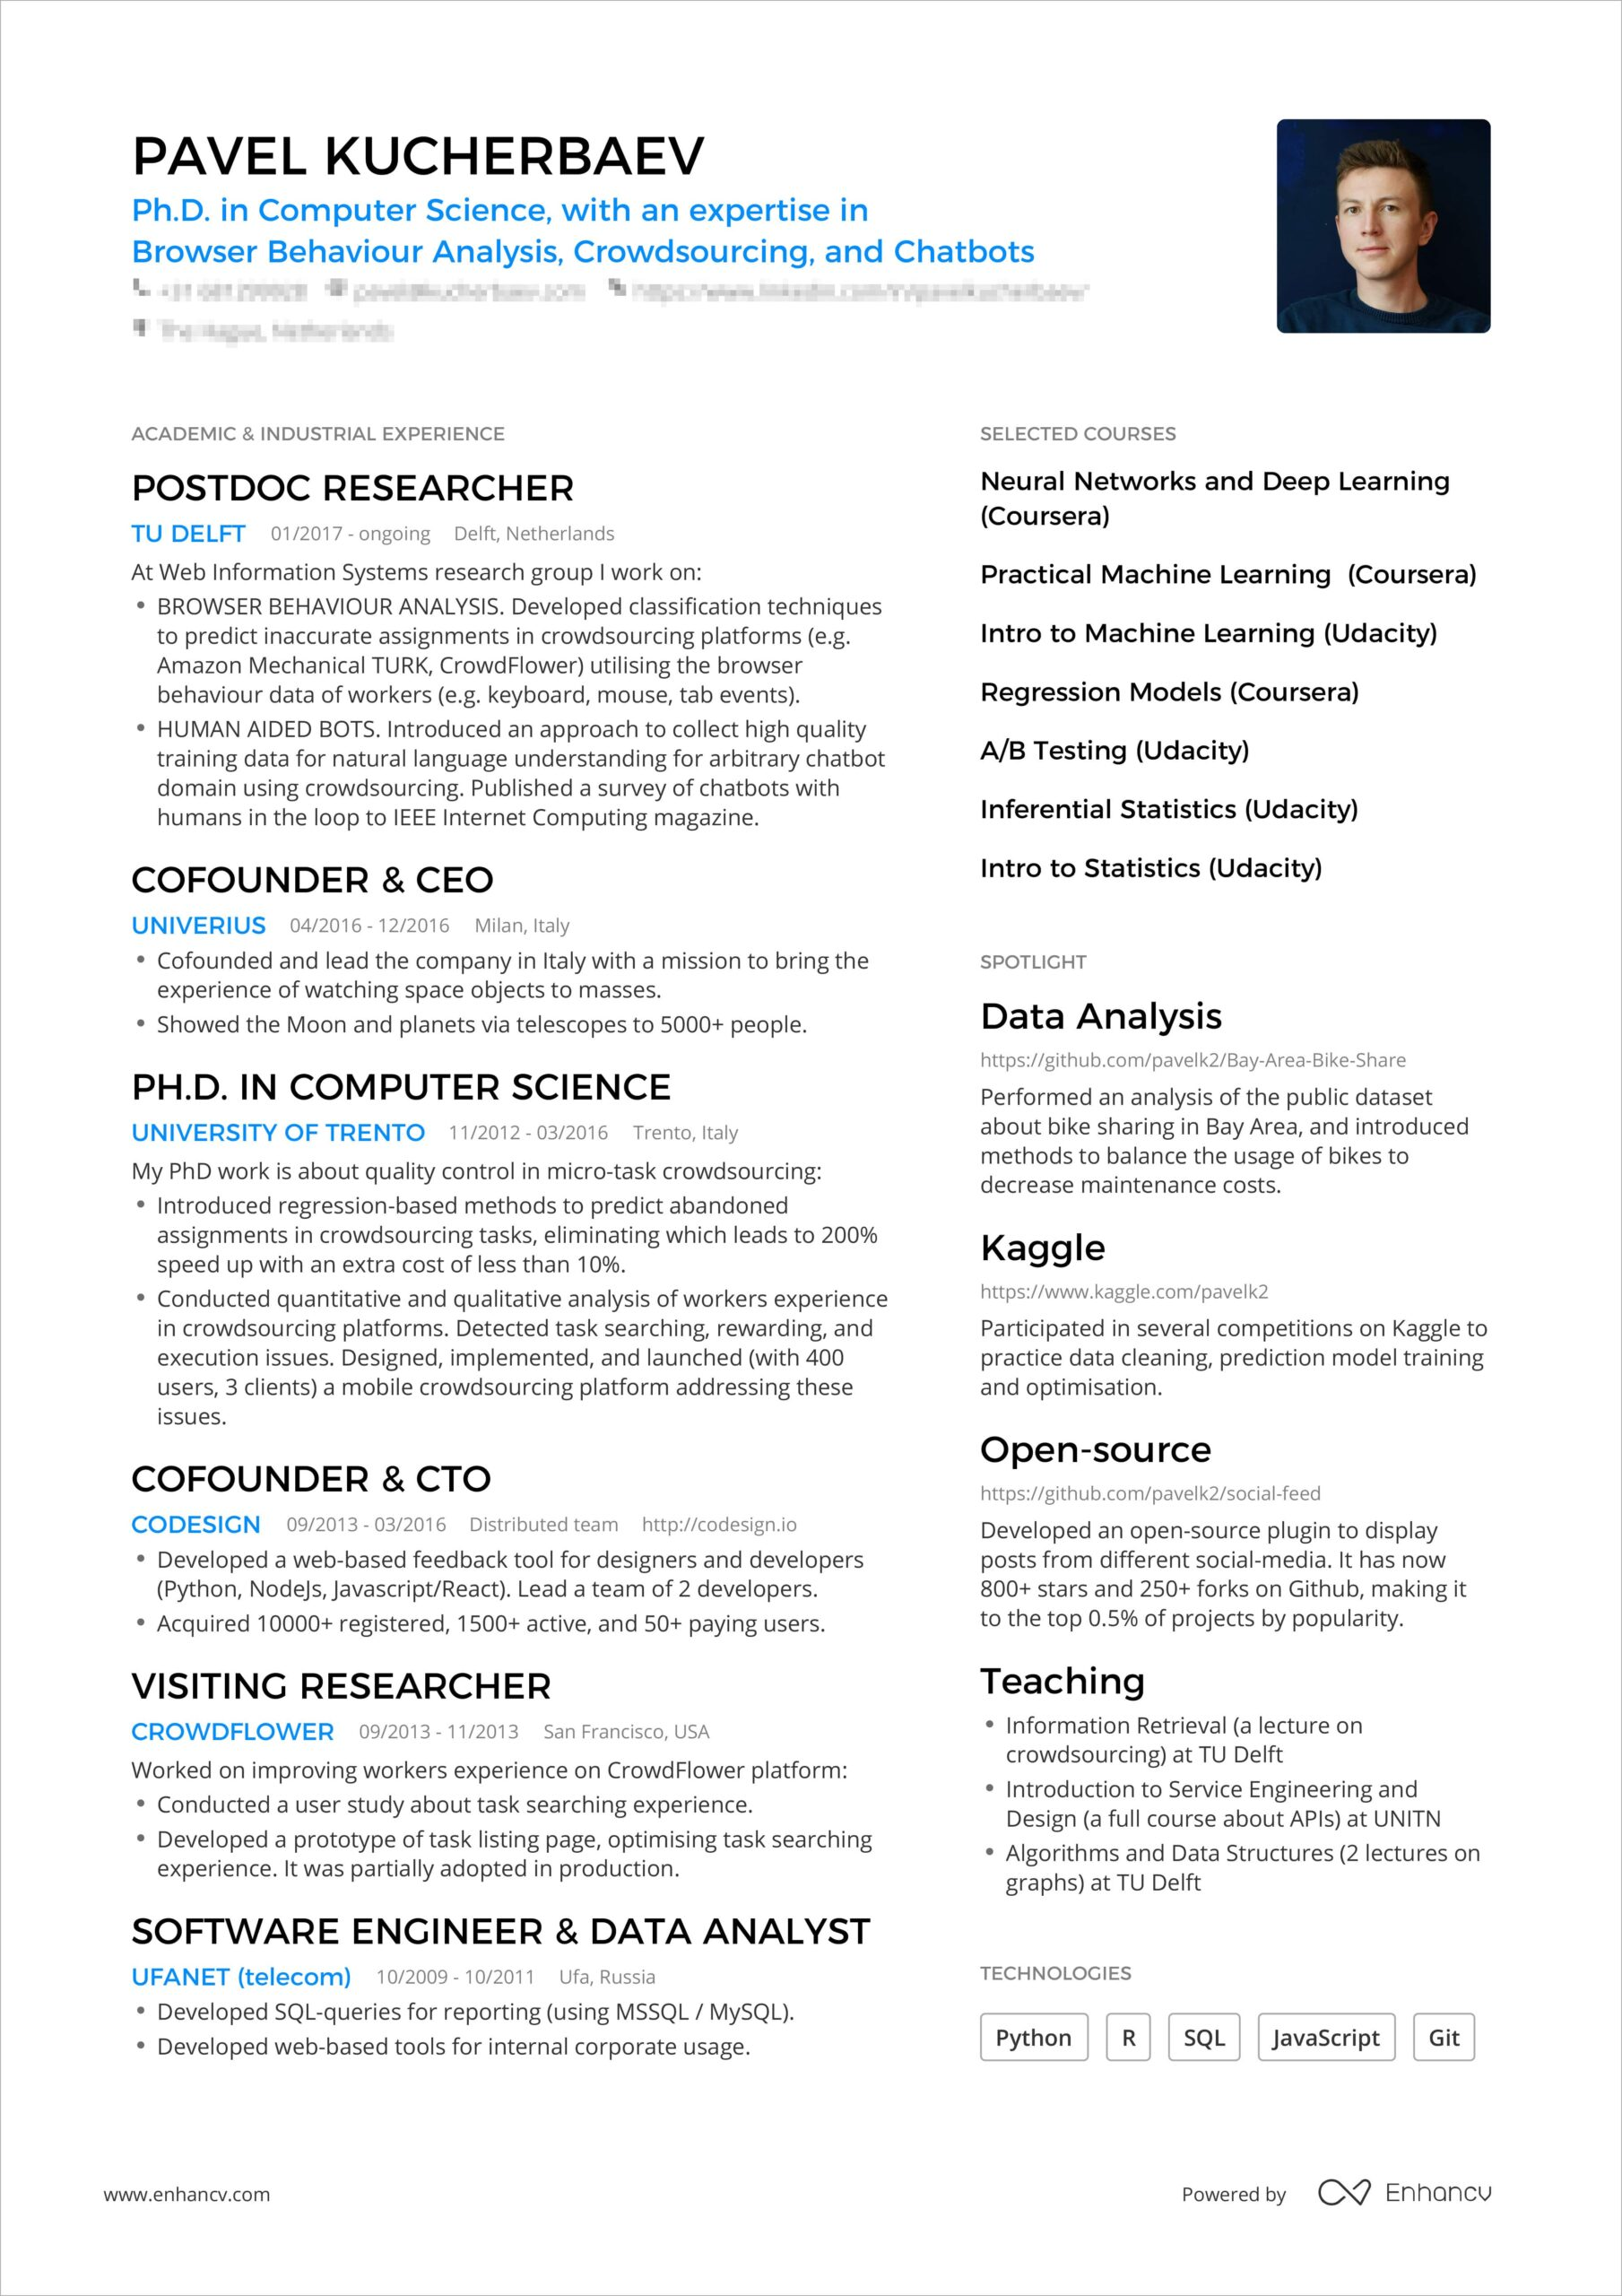 powerful one resume examples you can use now profile portion of pavel booking bordered Resume Profile Portion Of Resume